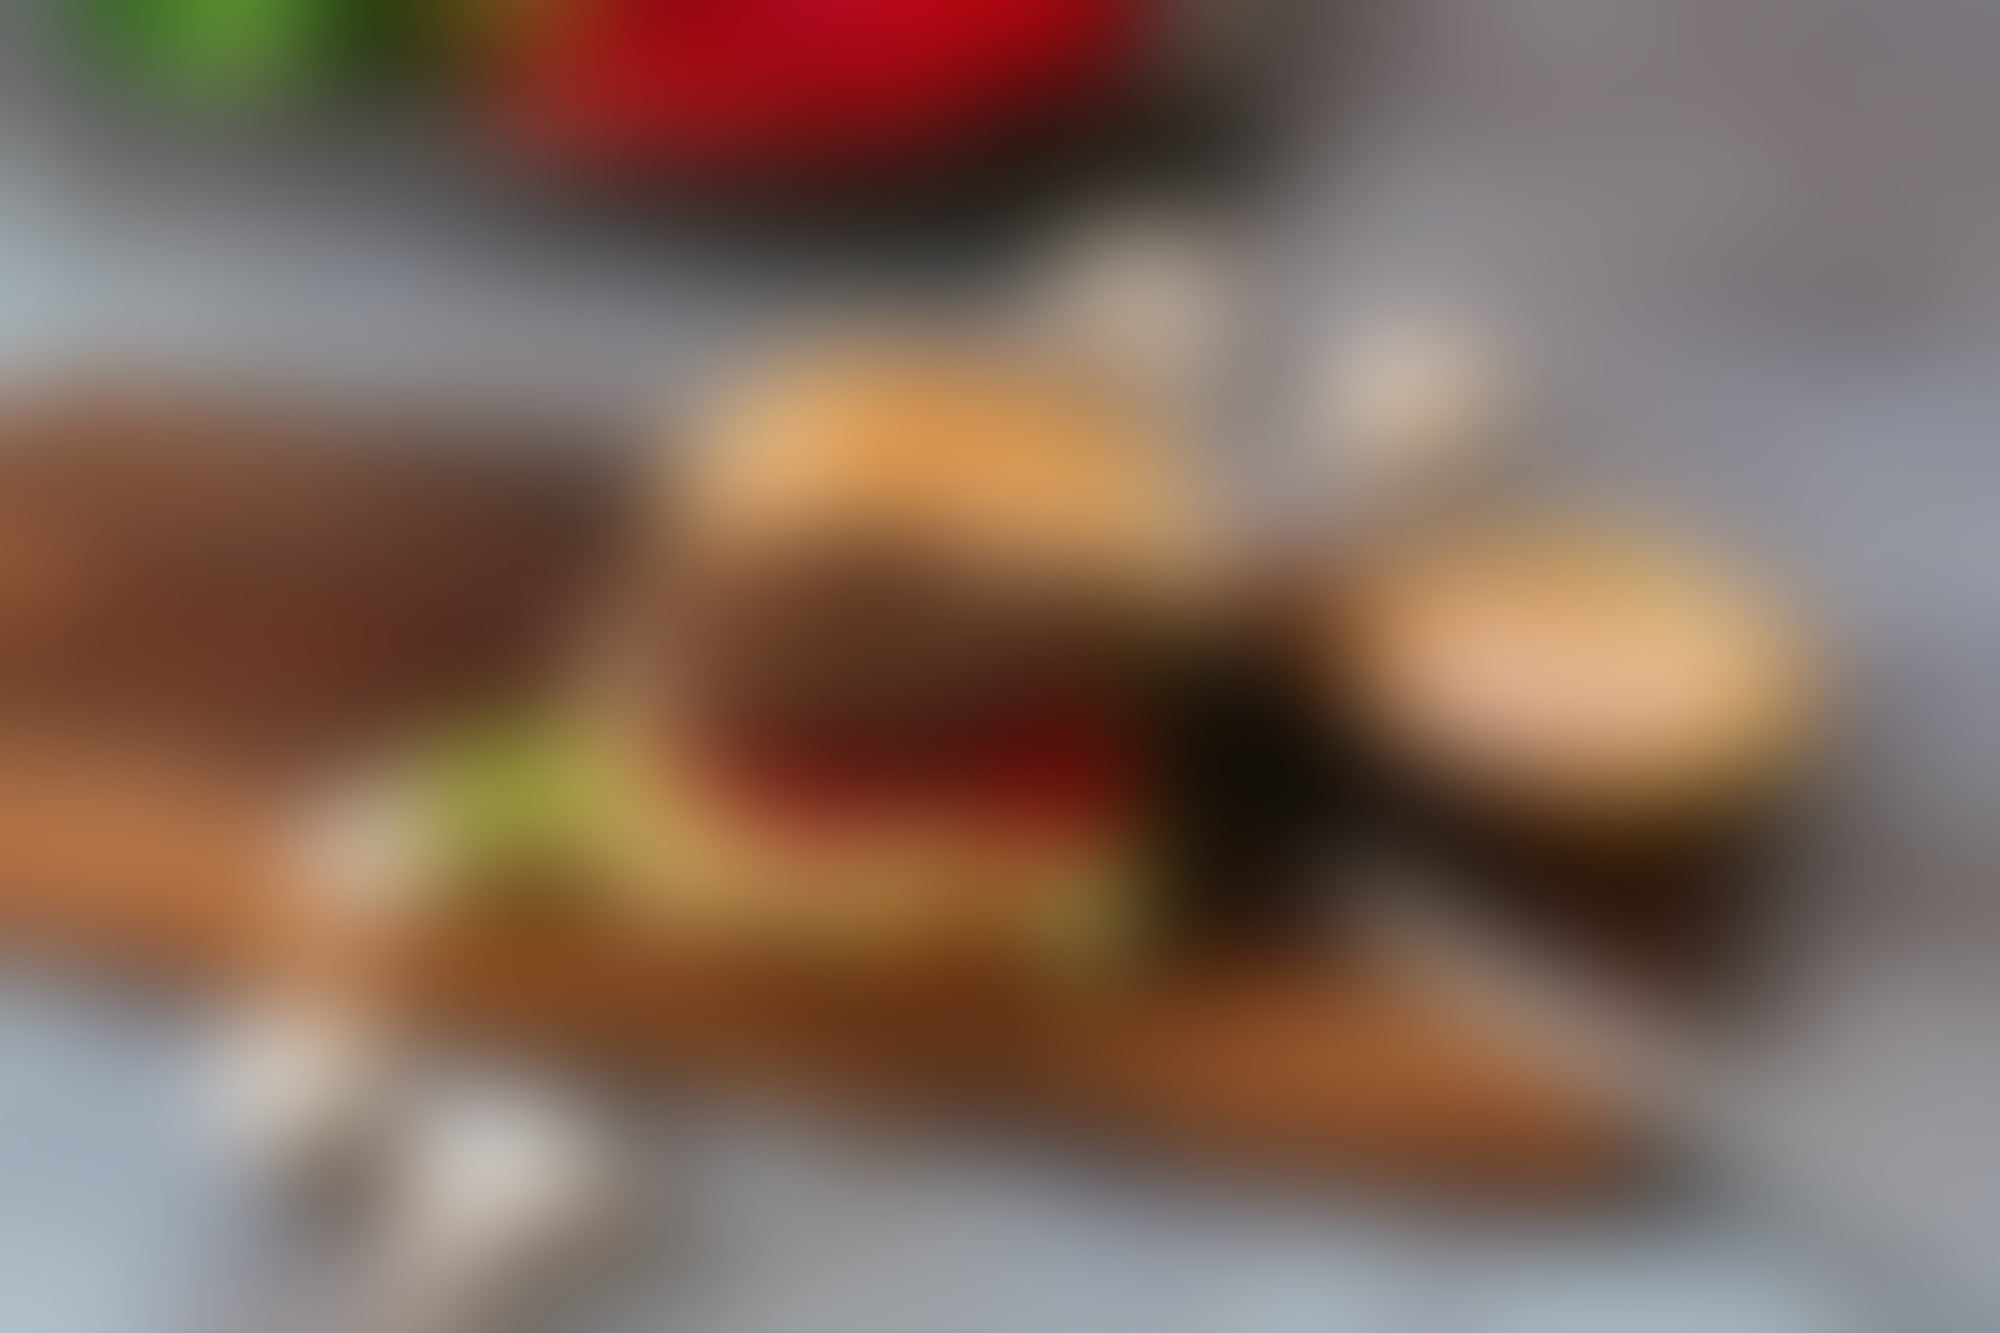 Applegate's New Blend Burgers Are Targeted Toward 'Conscious Carnivores' Who Want to Eat More Plants